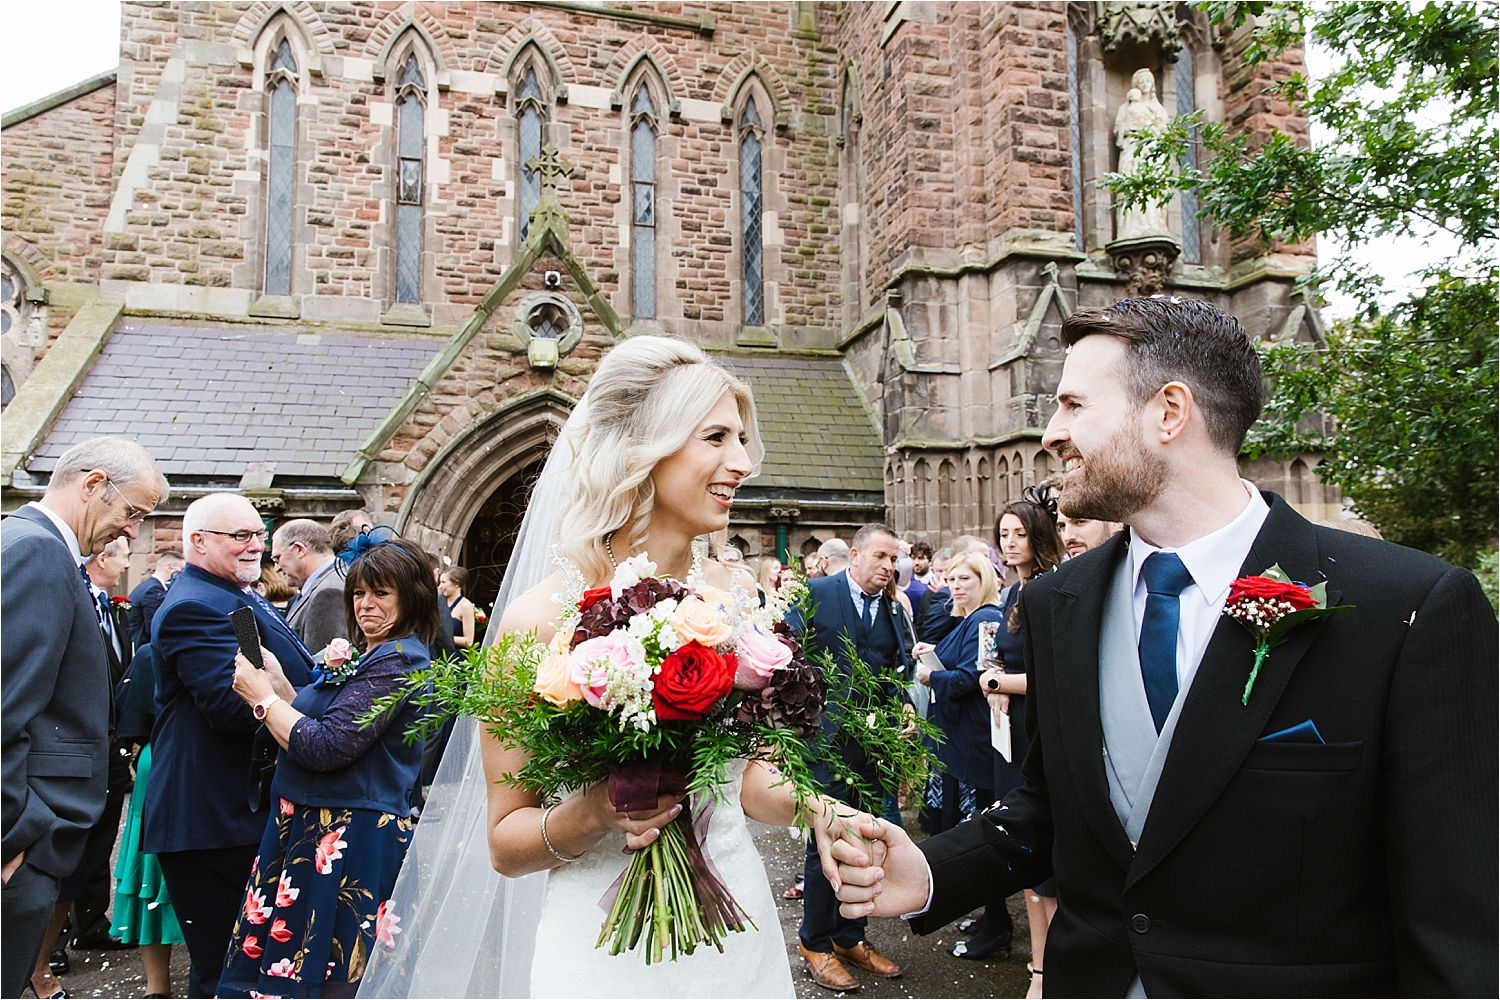 Bride and groom outside church. Bridal bouquet by Deborah's Florist Barrow